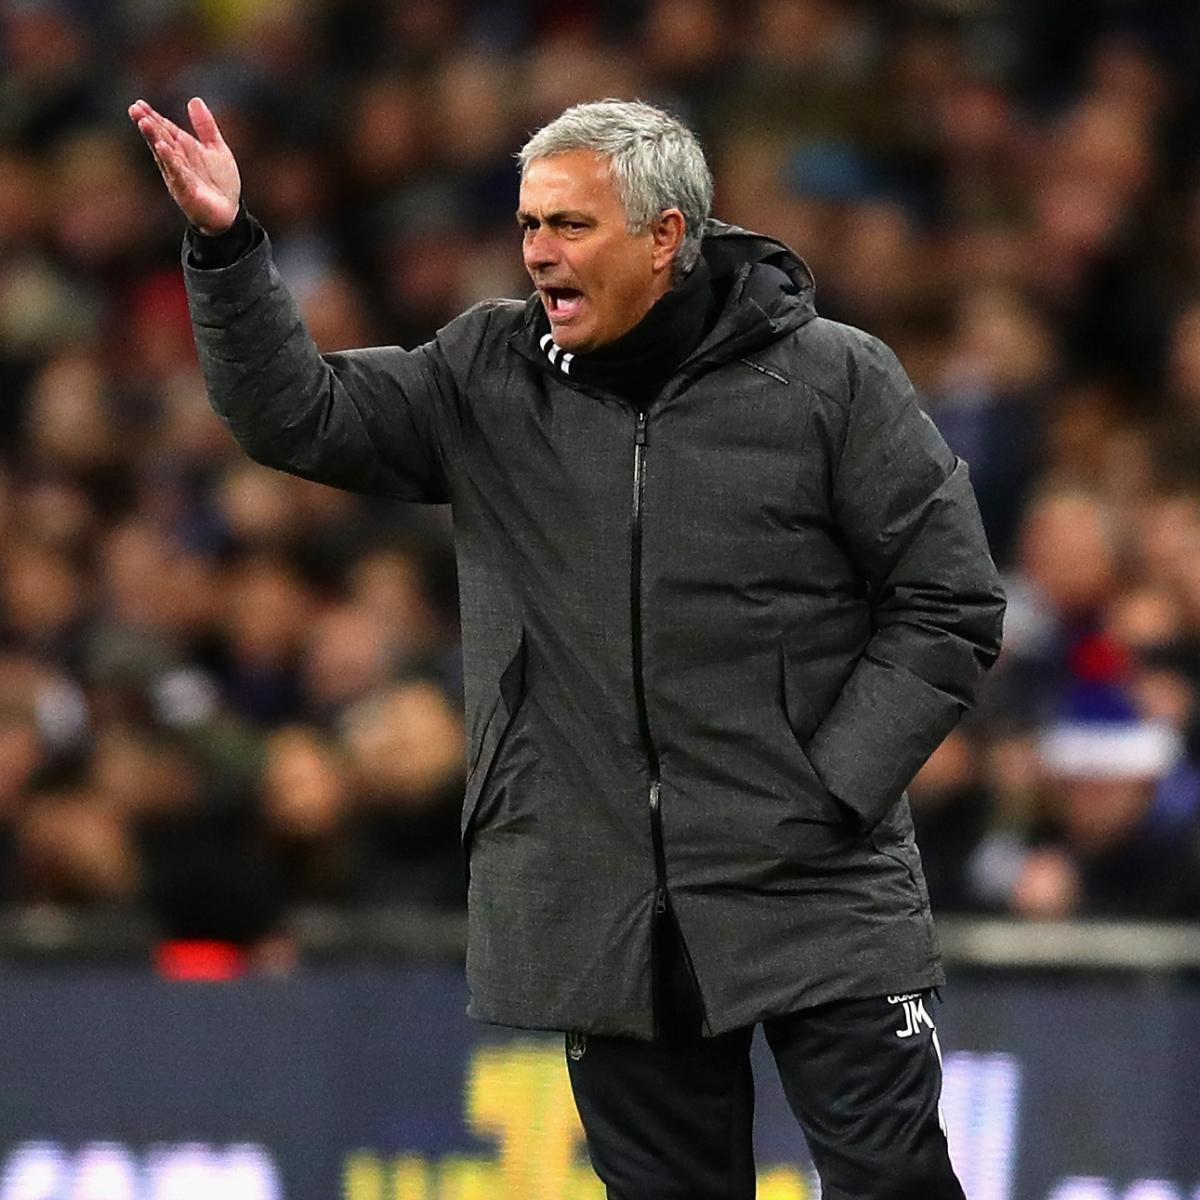 Manchester United Latest Transfer Window: What Next For Jose Mourinho's Manchester United In The